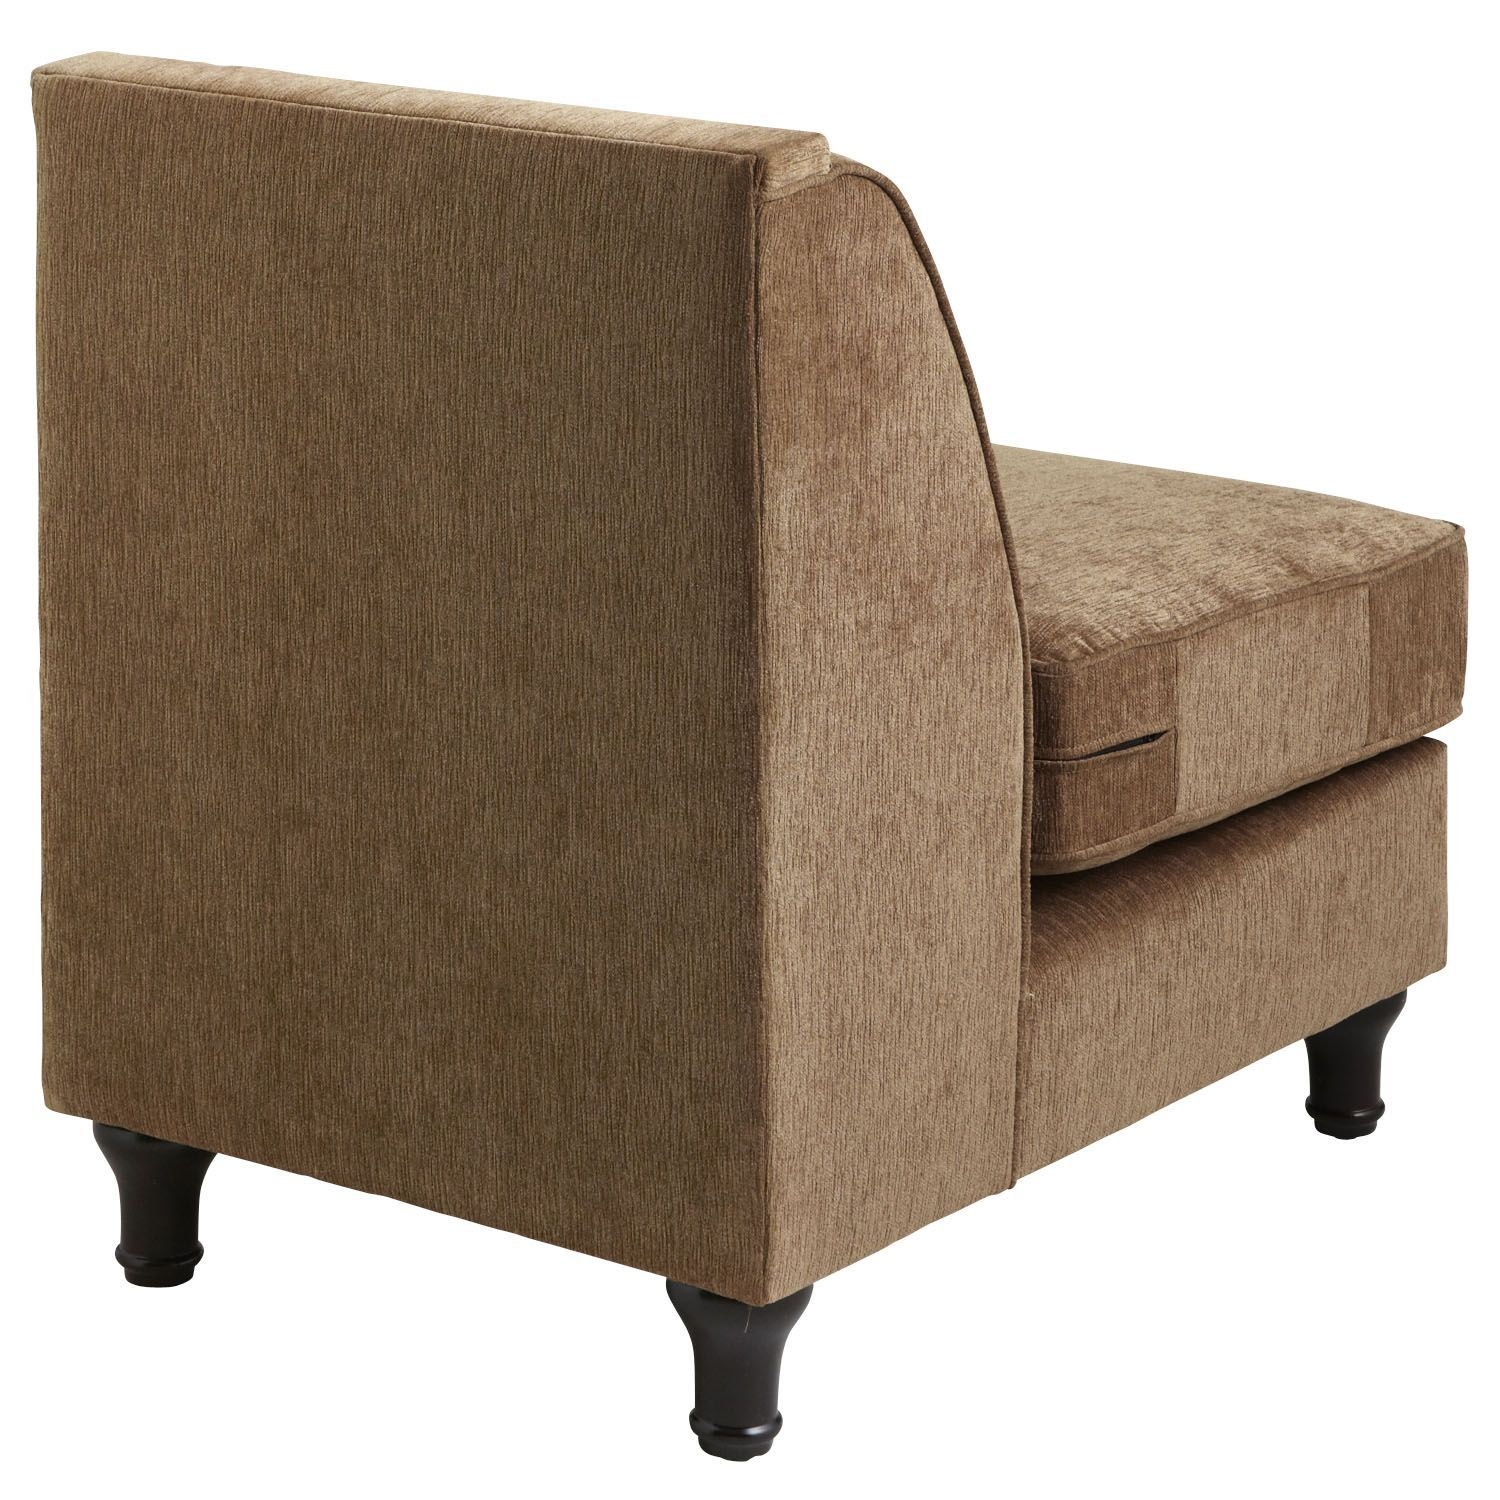 Carmen Toasted Pecan Brown Armless Chair